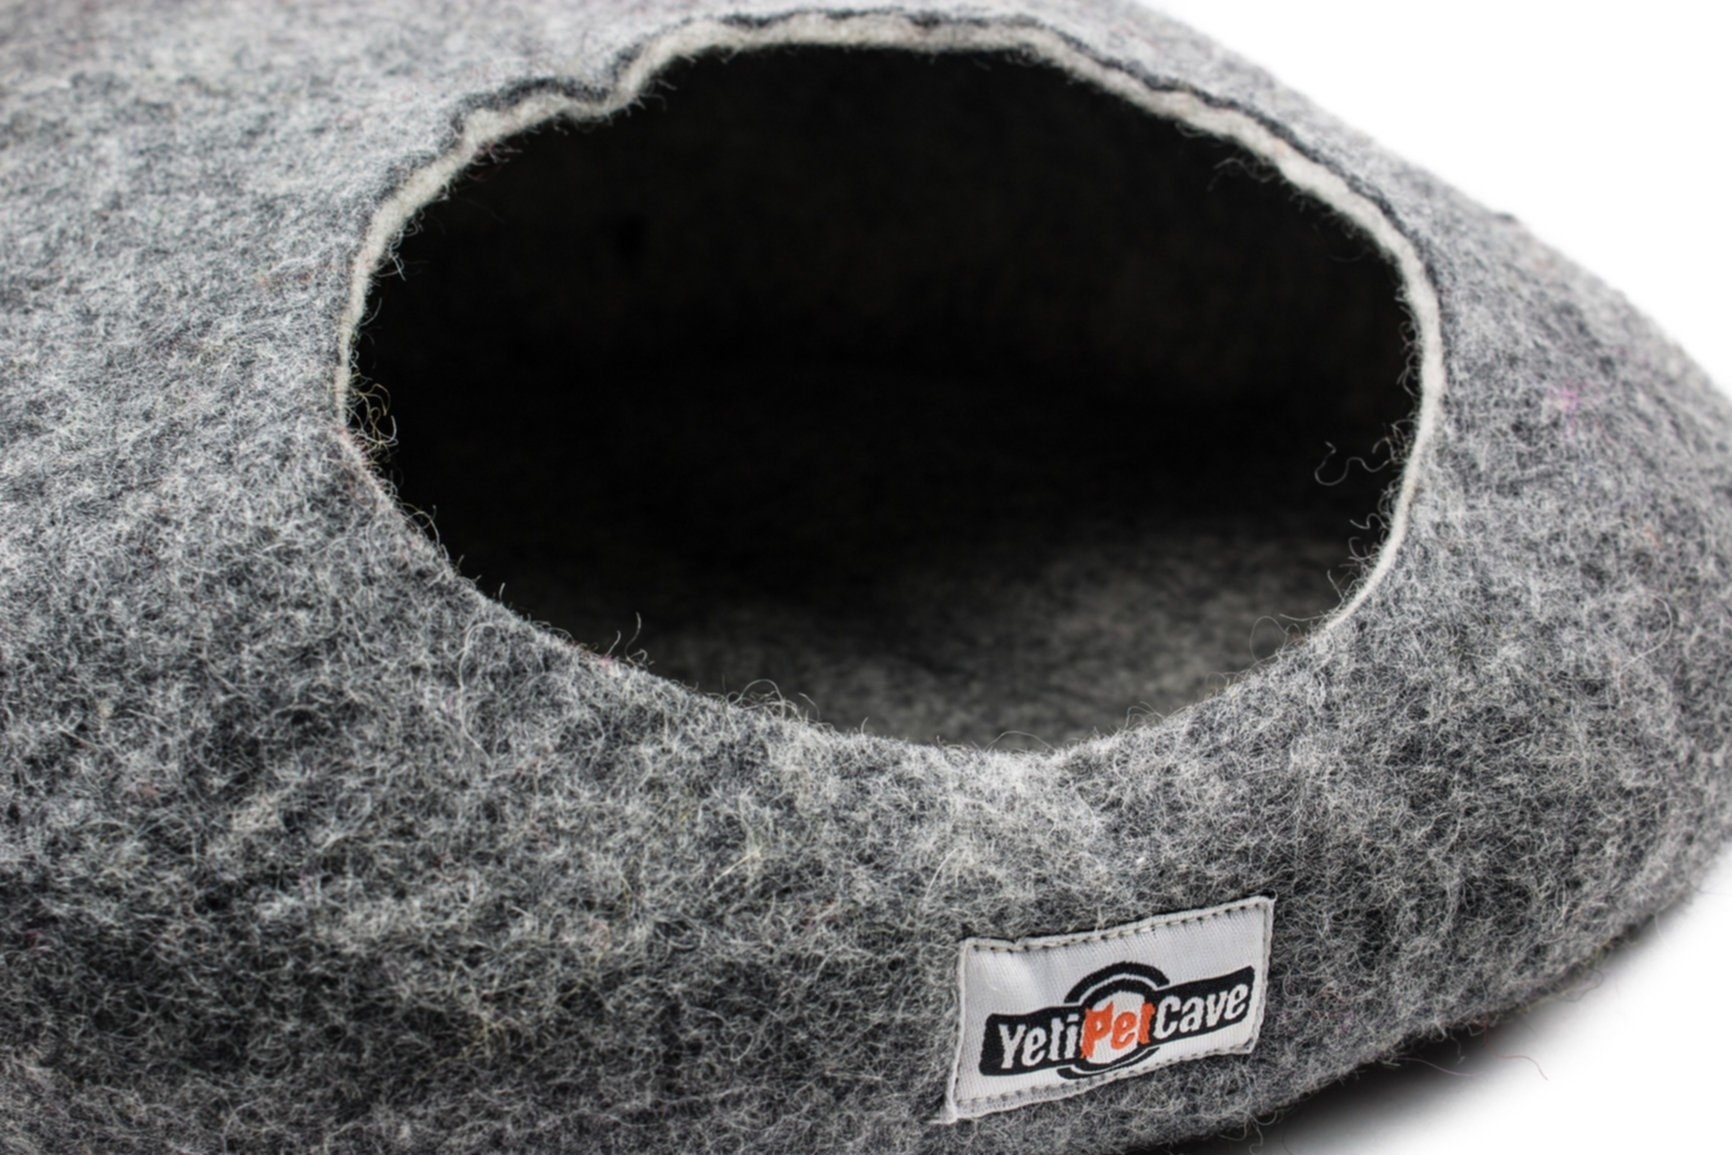 Yeti Pet Cave Cat Bed, Charcoal